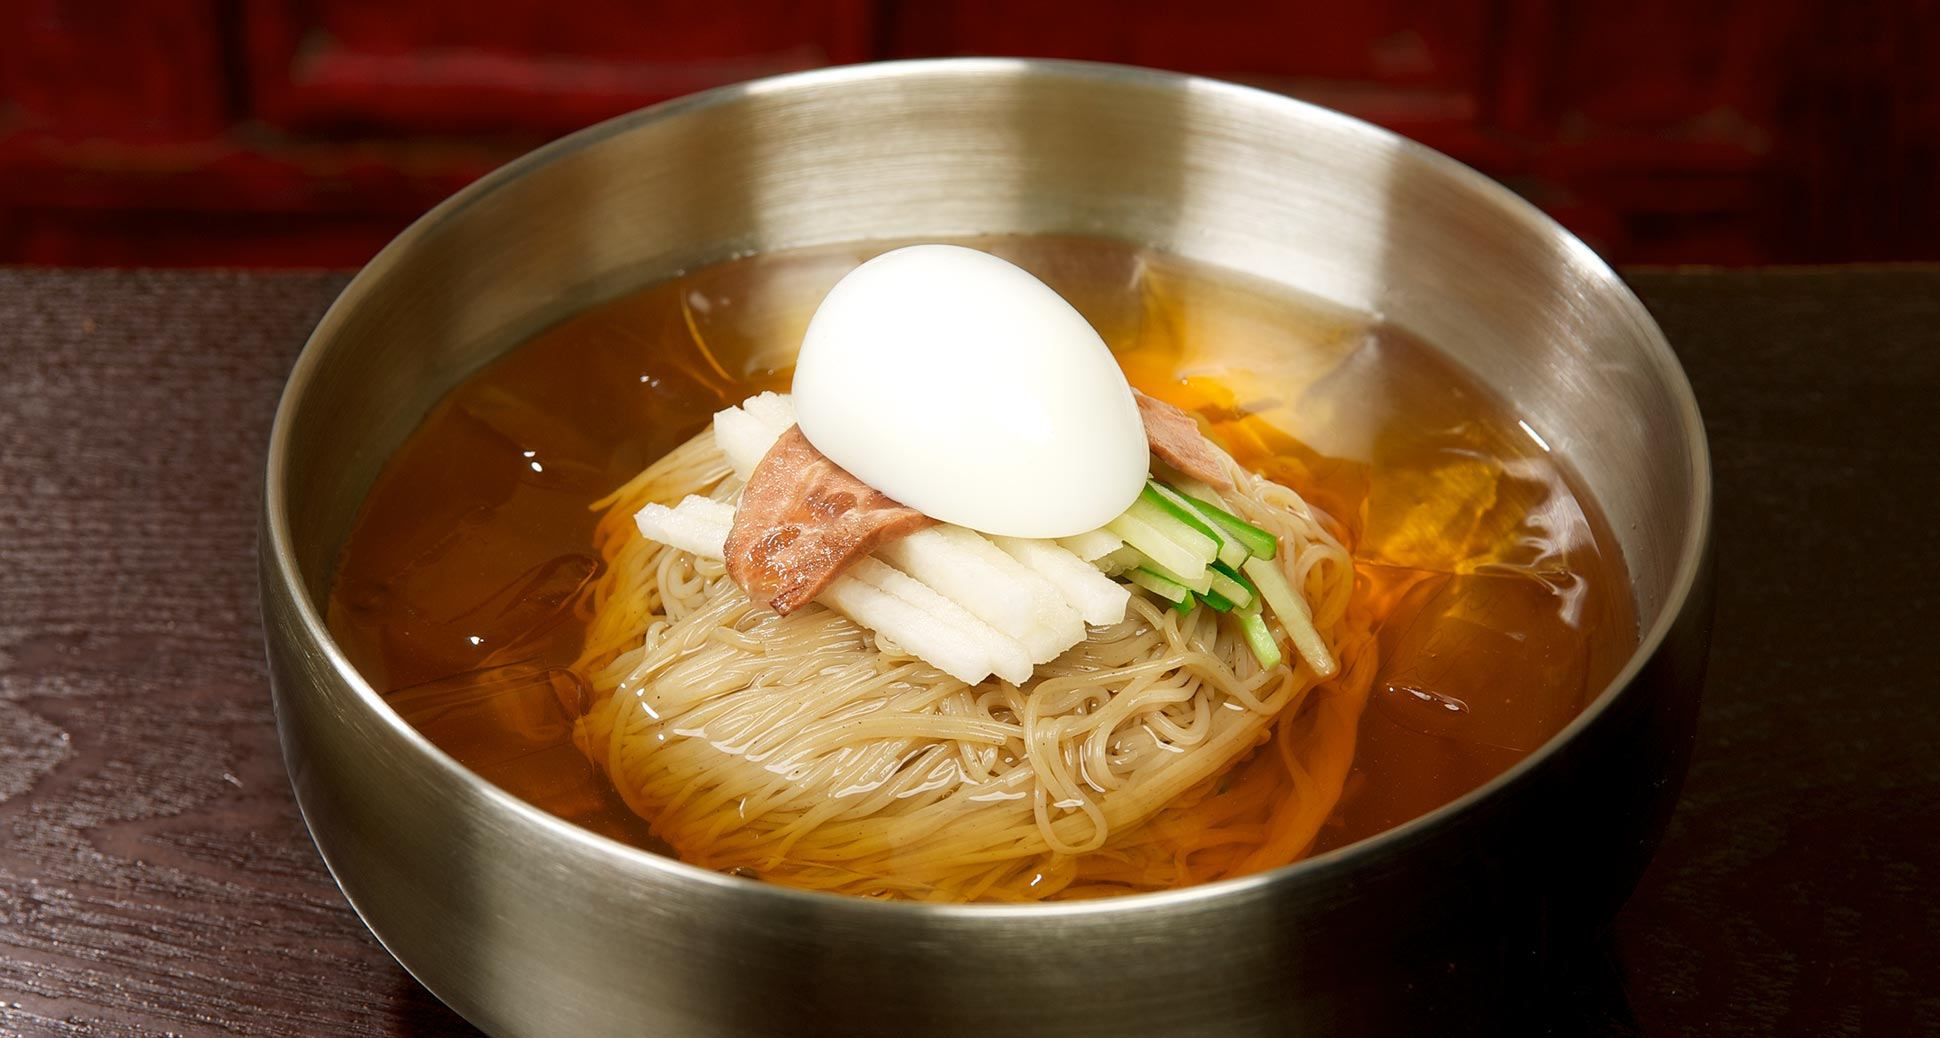 Korean meals for those sizzling hot summer days